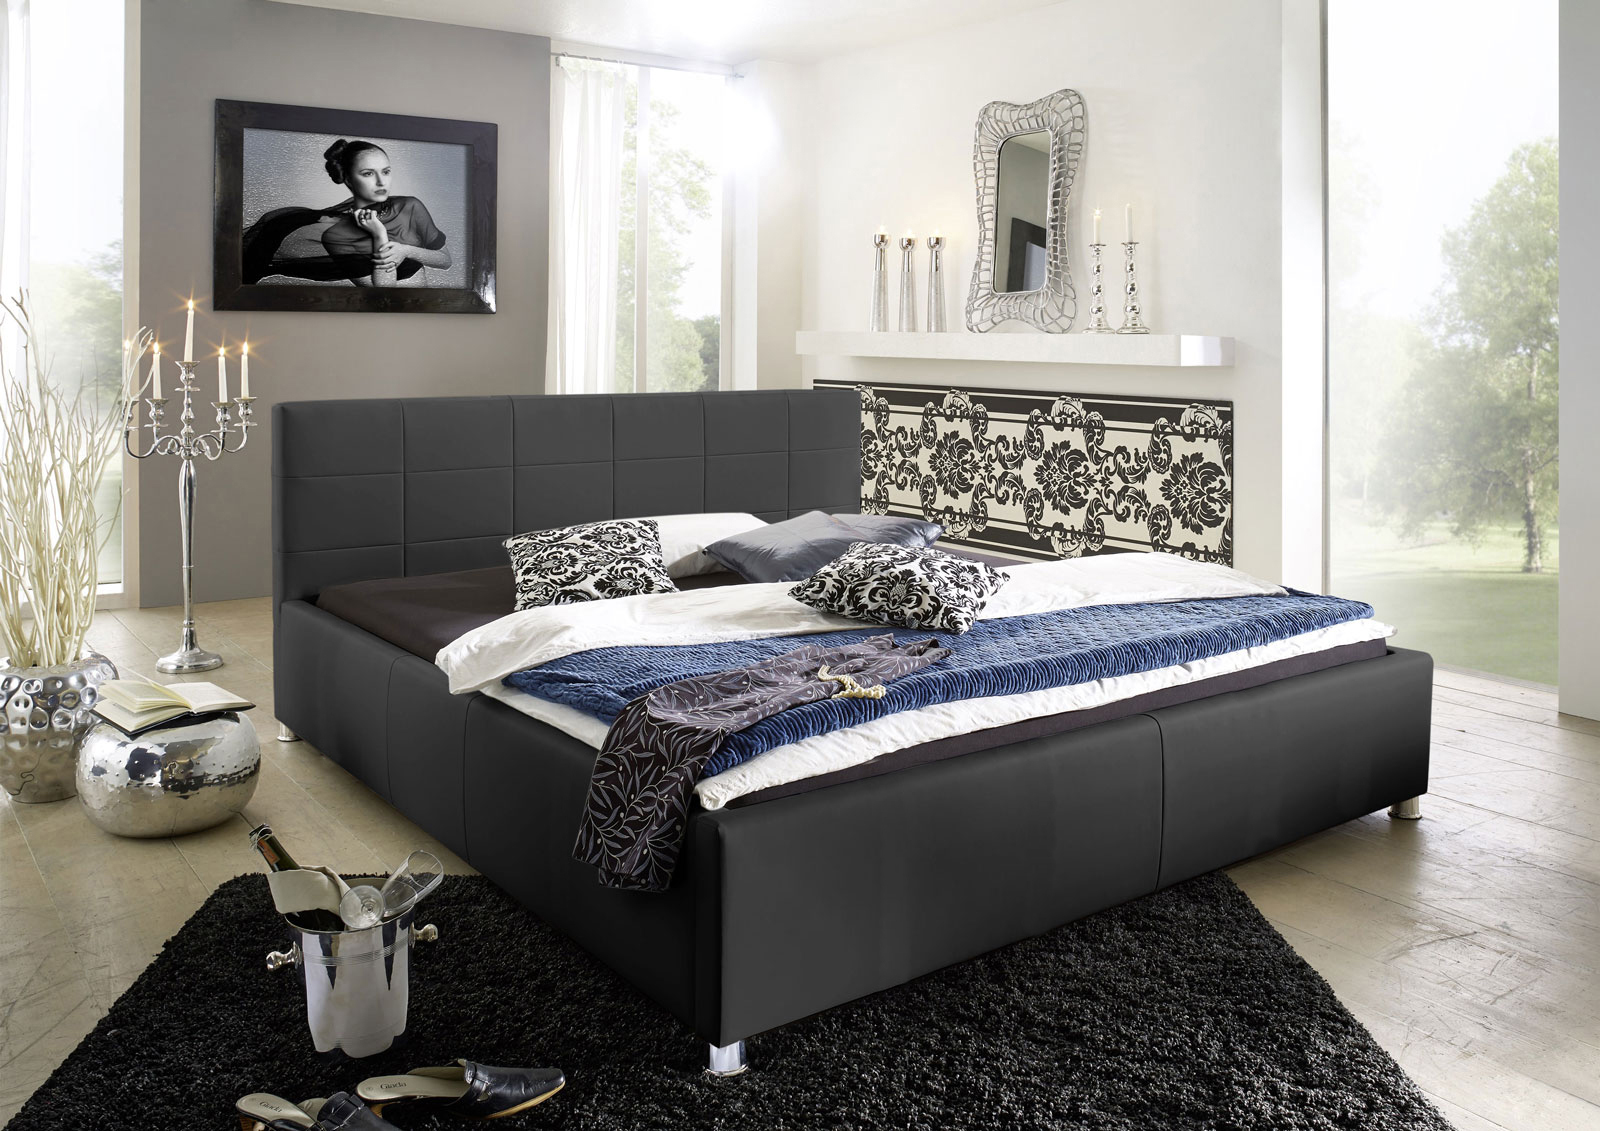 sam polsterbett 160 x 200 cm schwarz doppelbett kira. Black Bedroom Furniture Sets. Home Design Ideas